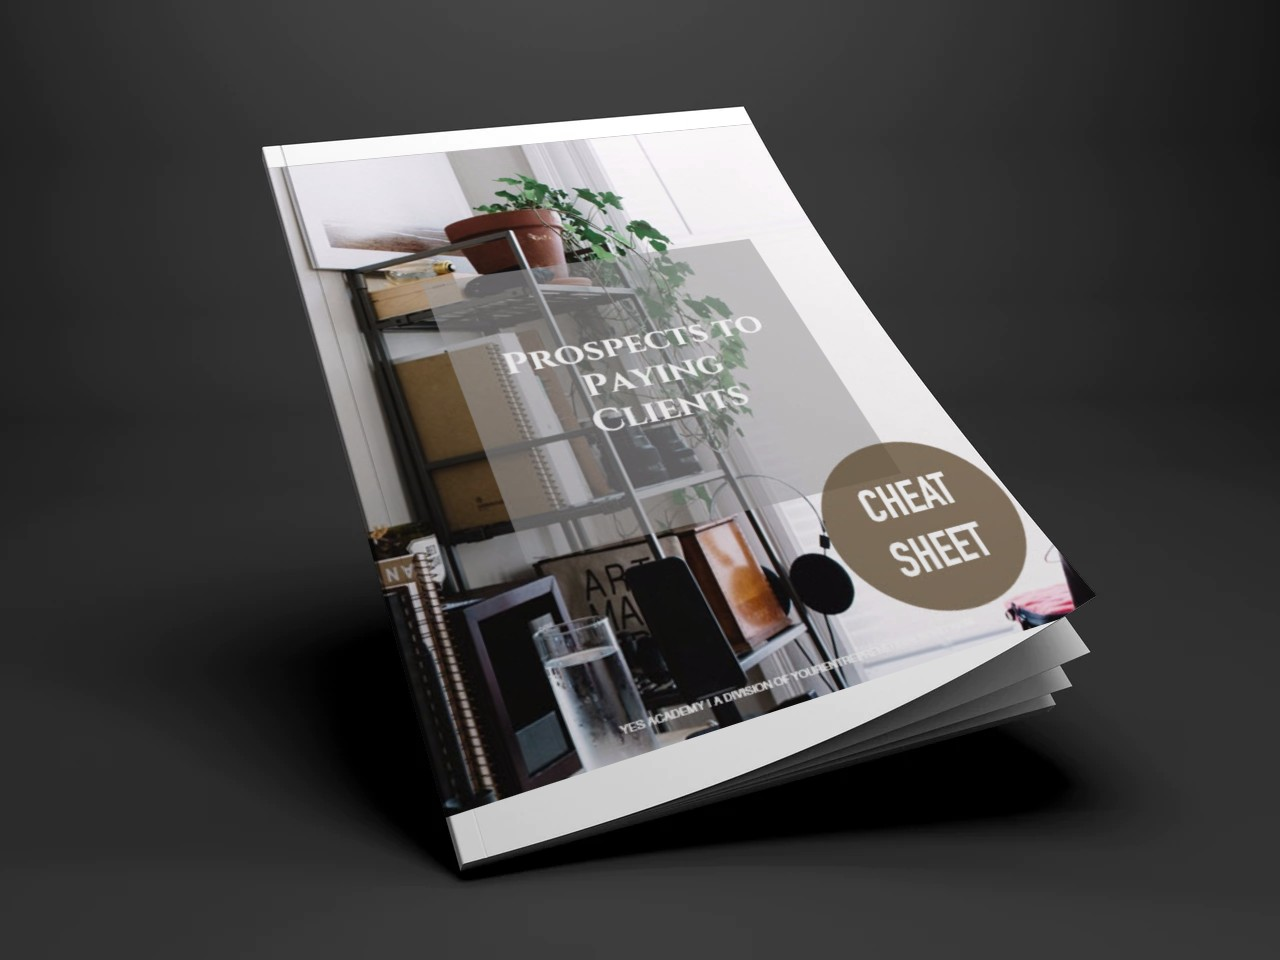 Get your copy here - Prospects to Paying Clients Cheat Sheet